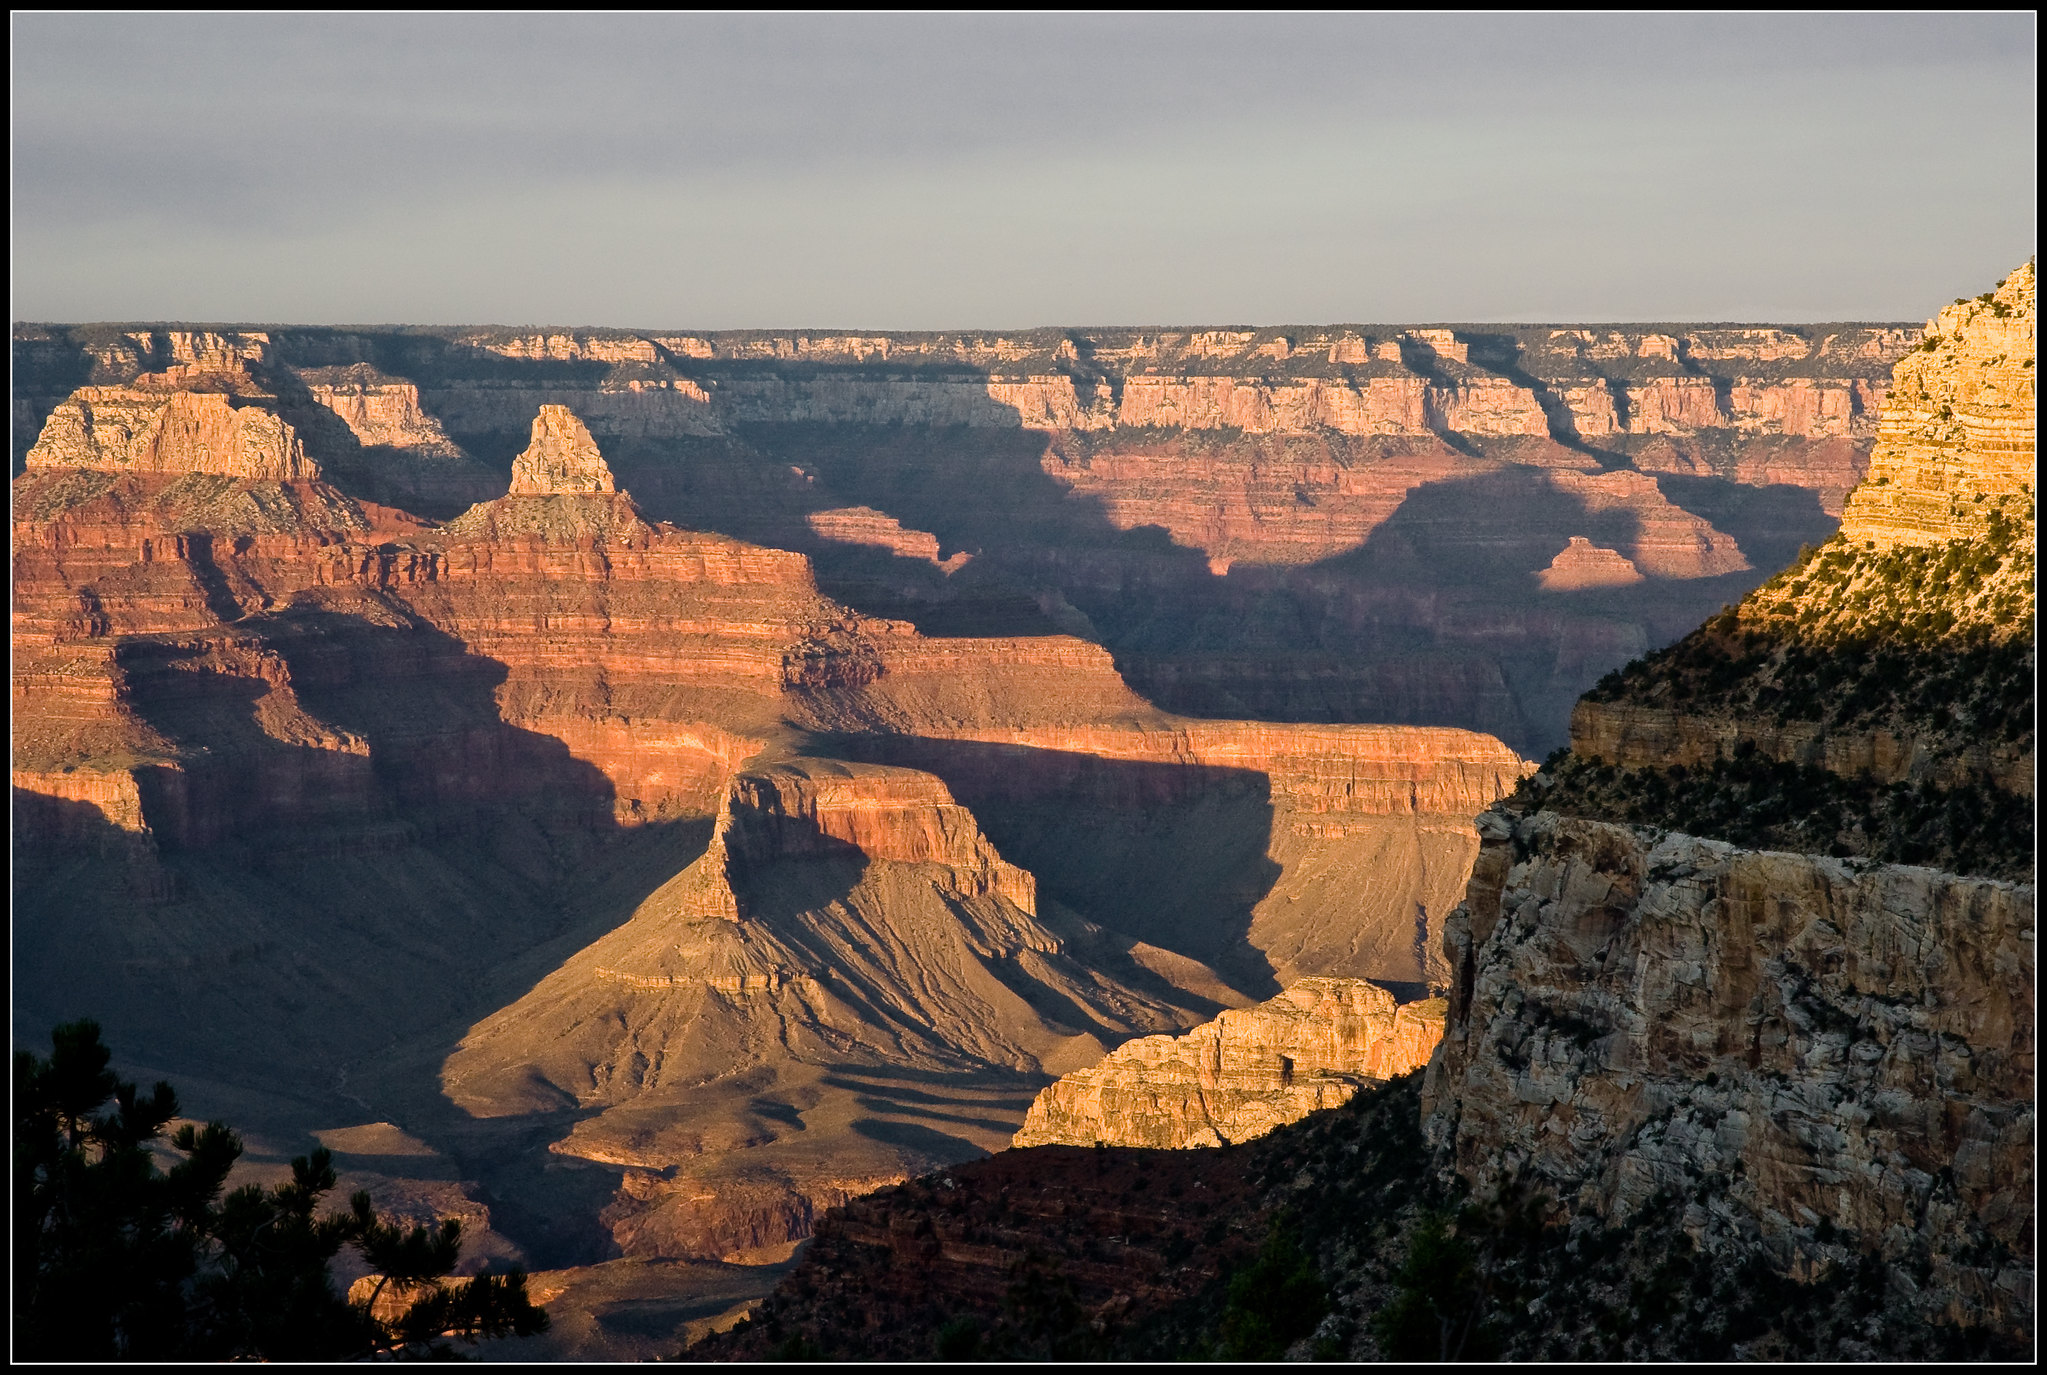 Photo of shadows cutting across the depths of the Grand Canyon, lit with pink and orange sunset light.